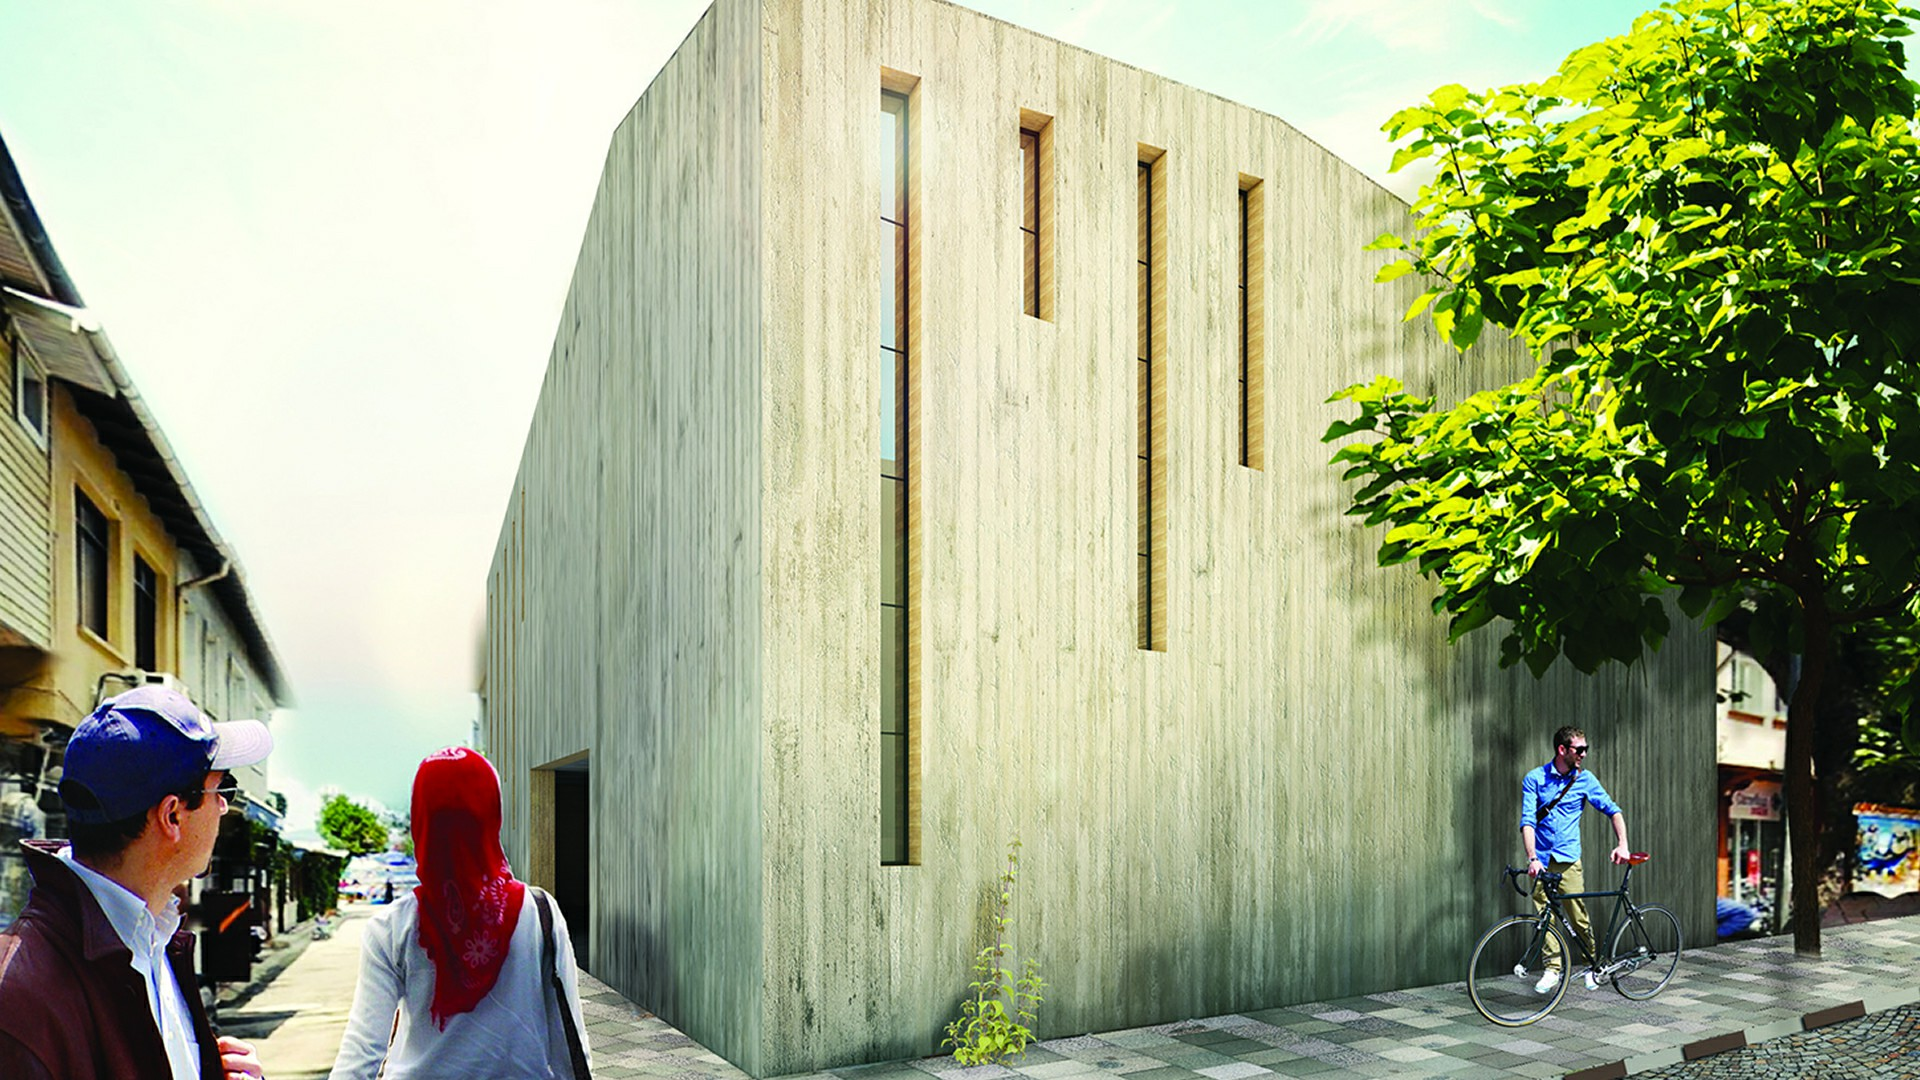 Buyukada Carsi Mosque National Design Competition